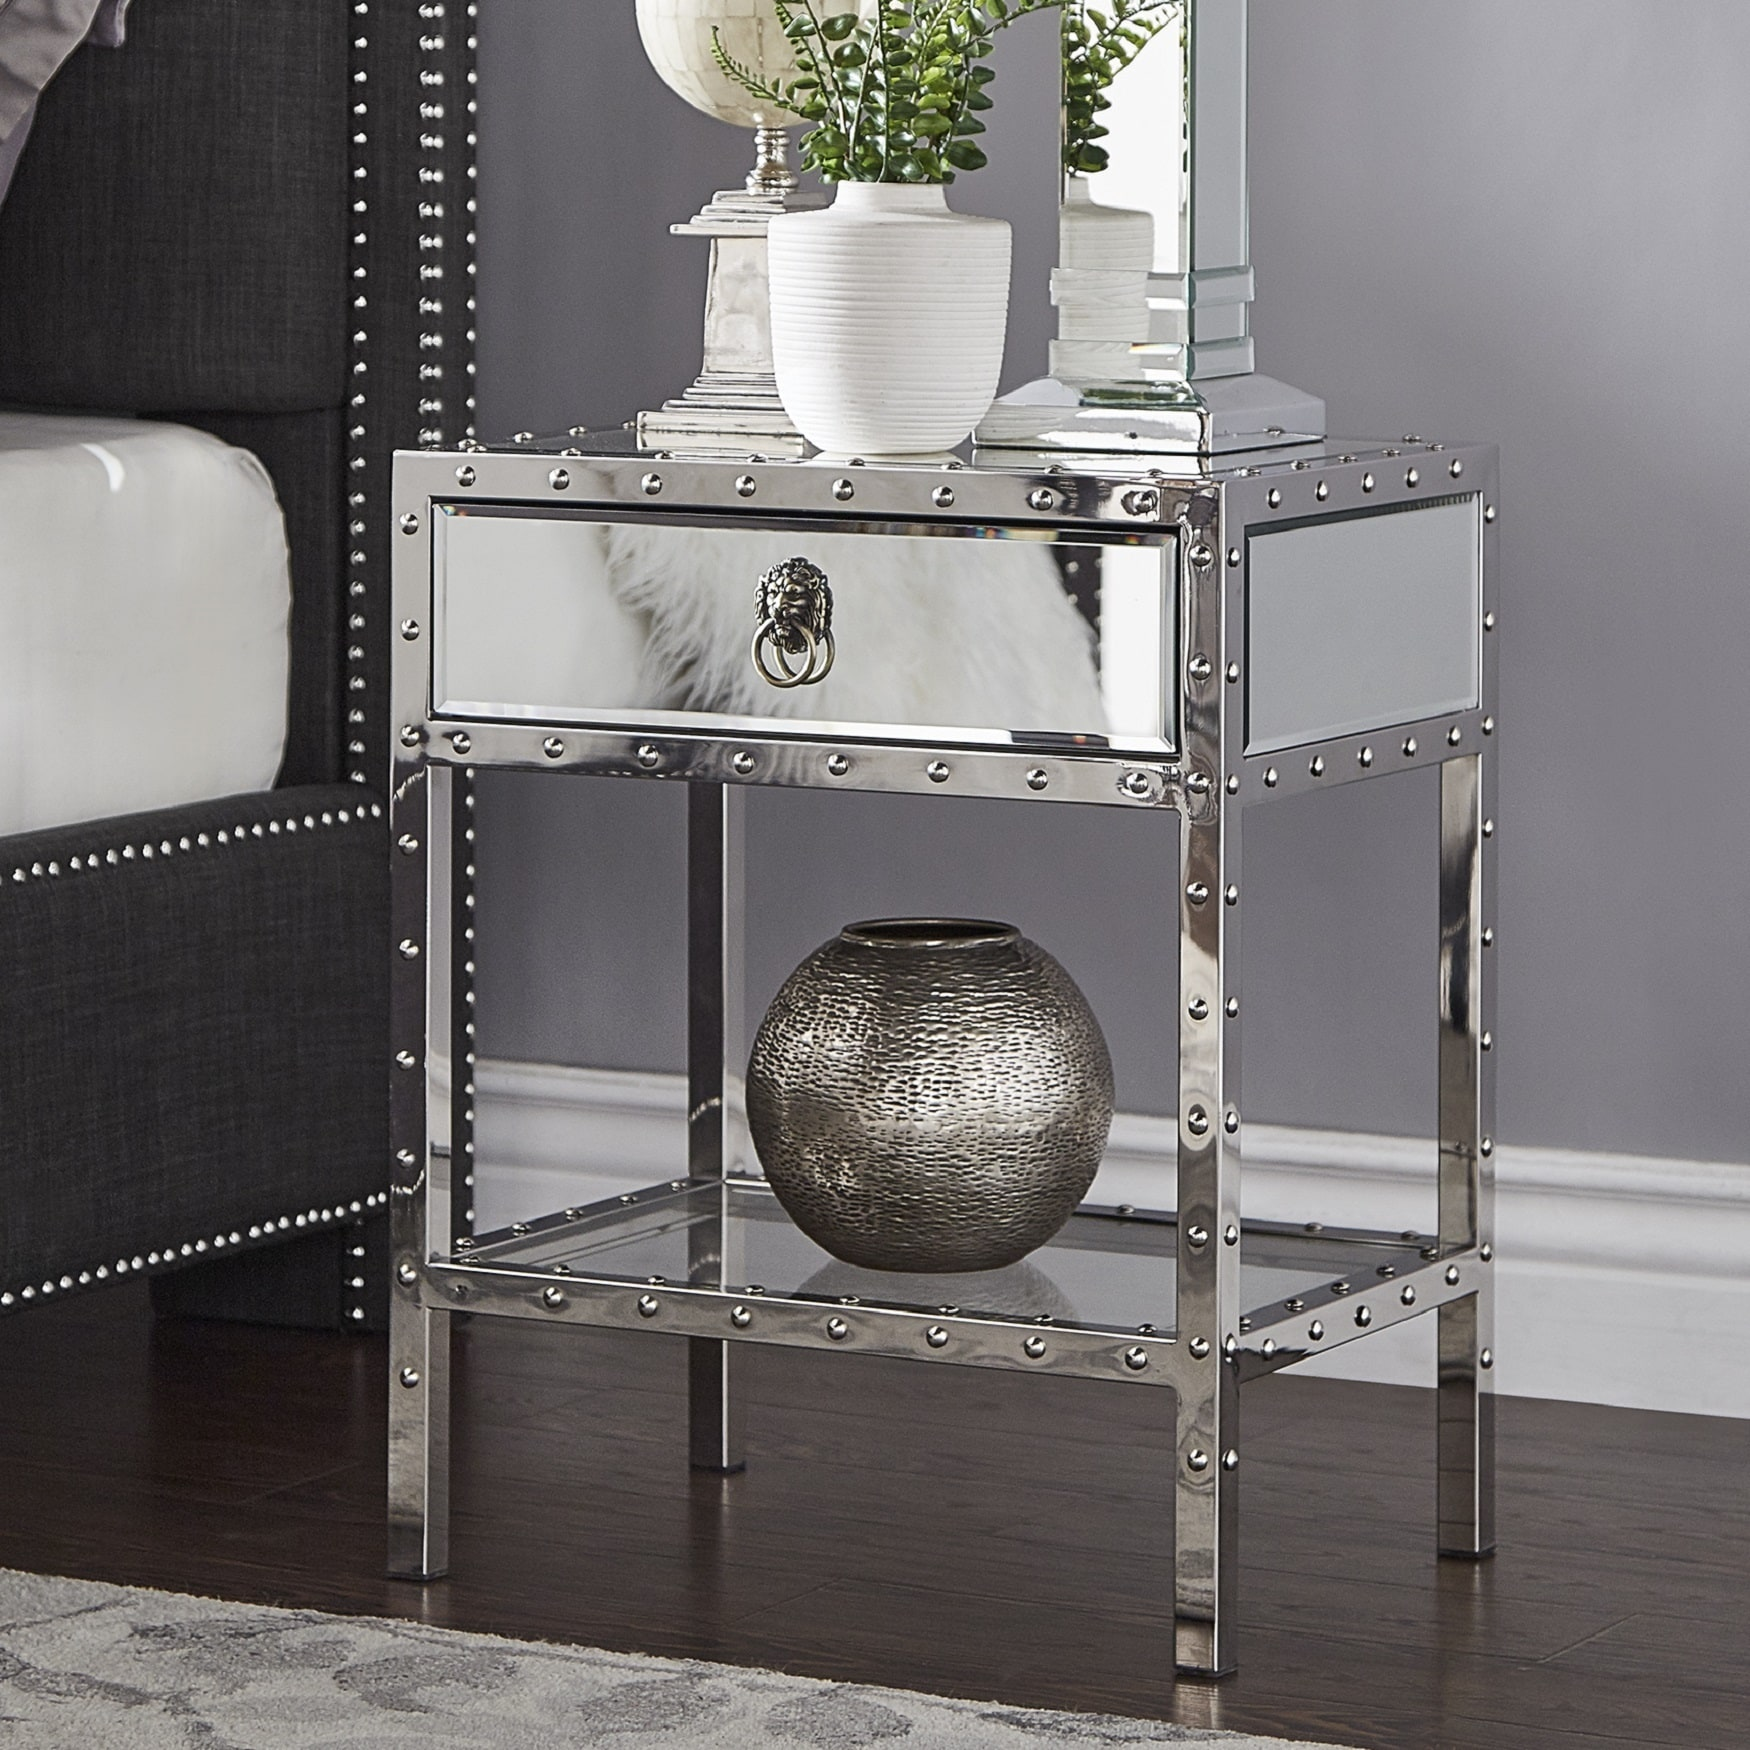 carter riveted stainless steel mirrored accent table inspire bold hollywood mosaic set high end lamps pottery barn circle half round entryway console with storage pier one sofa